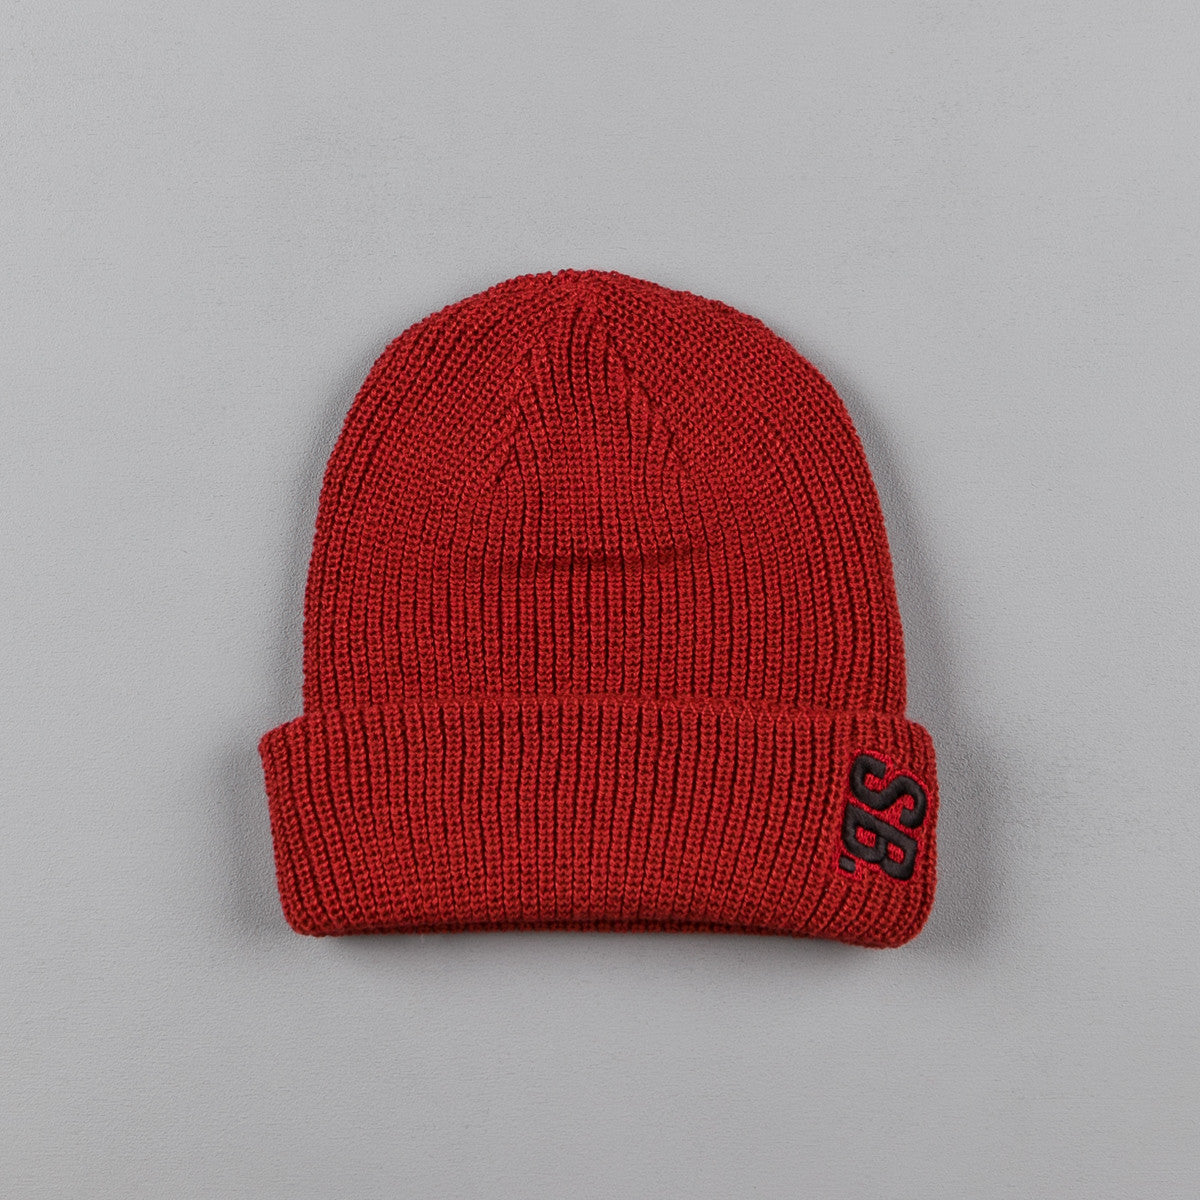 Nike SB Surplus Beanie - Dark Cayenne / Black